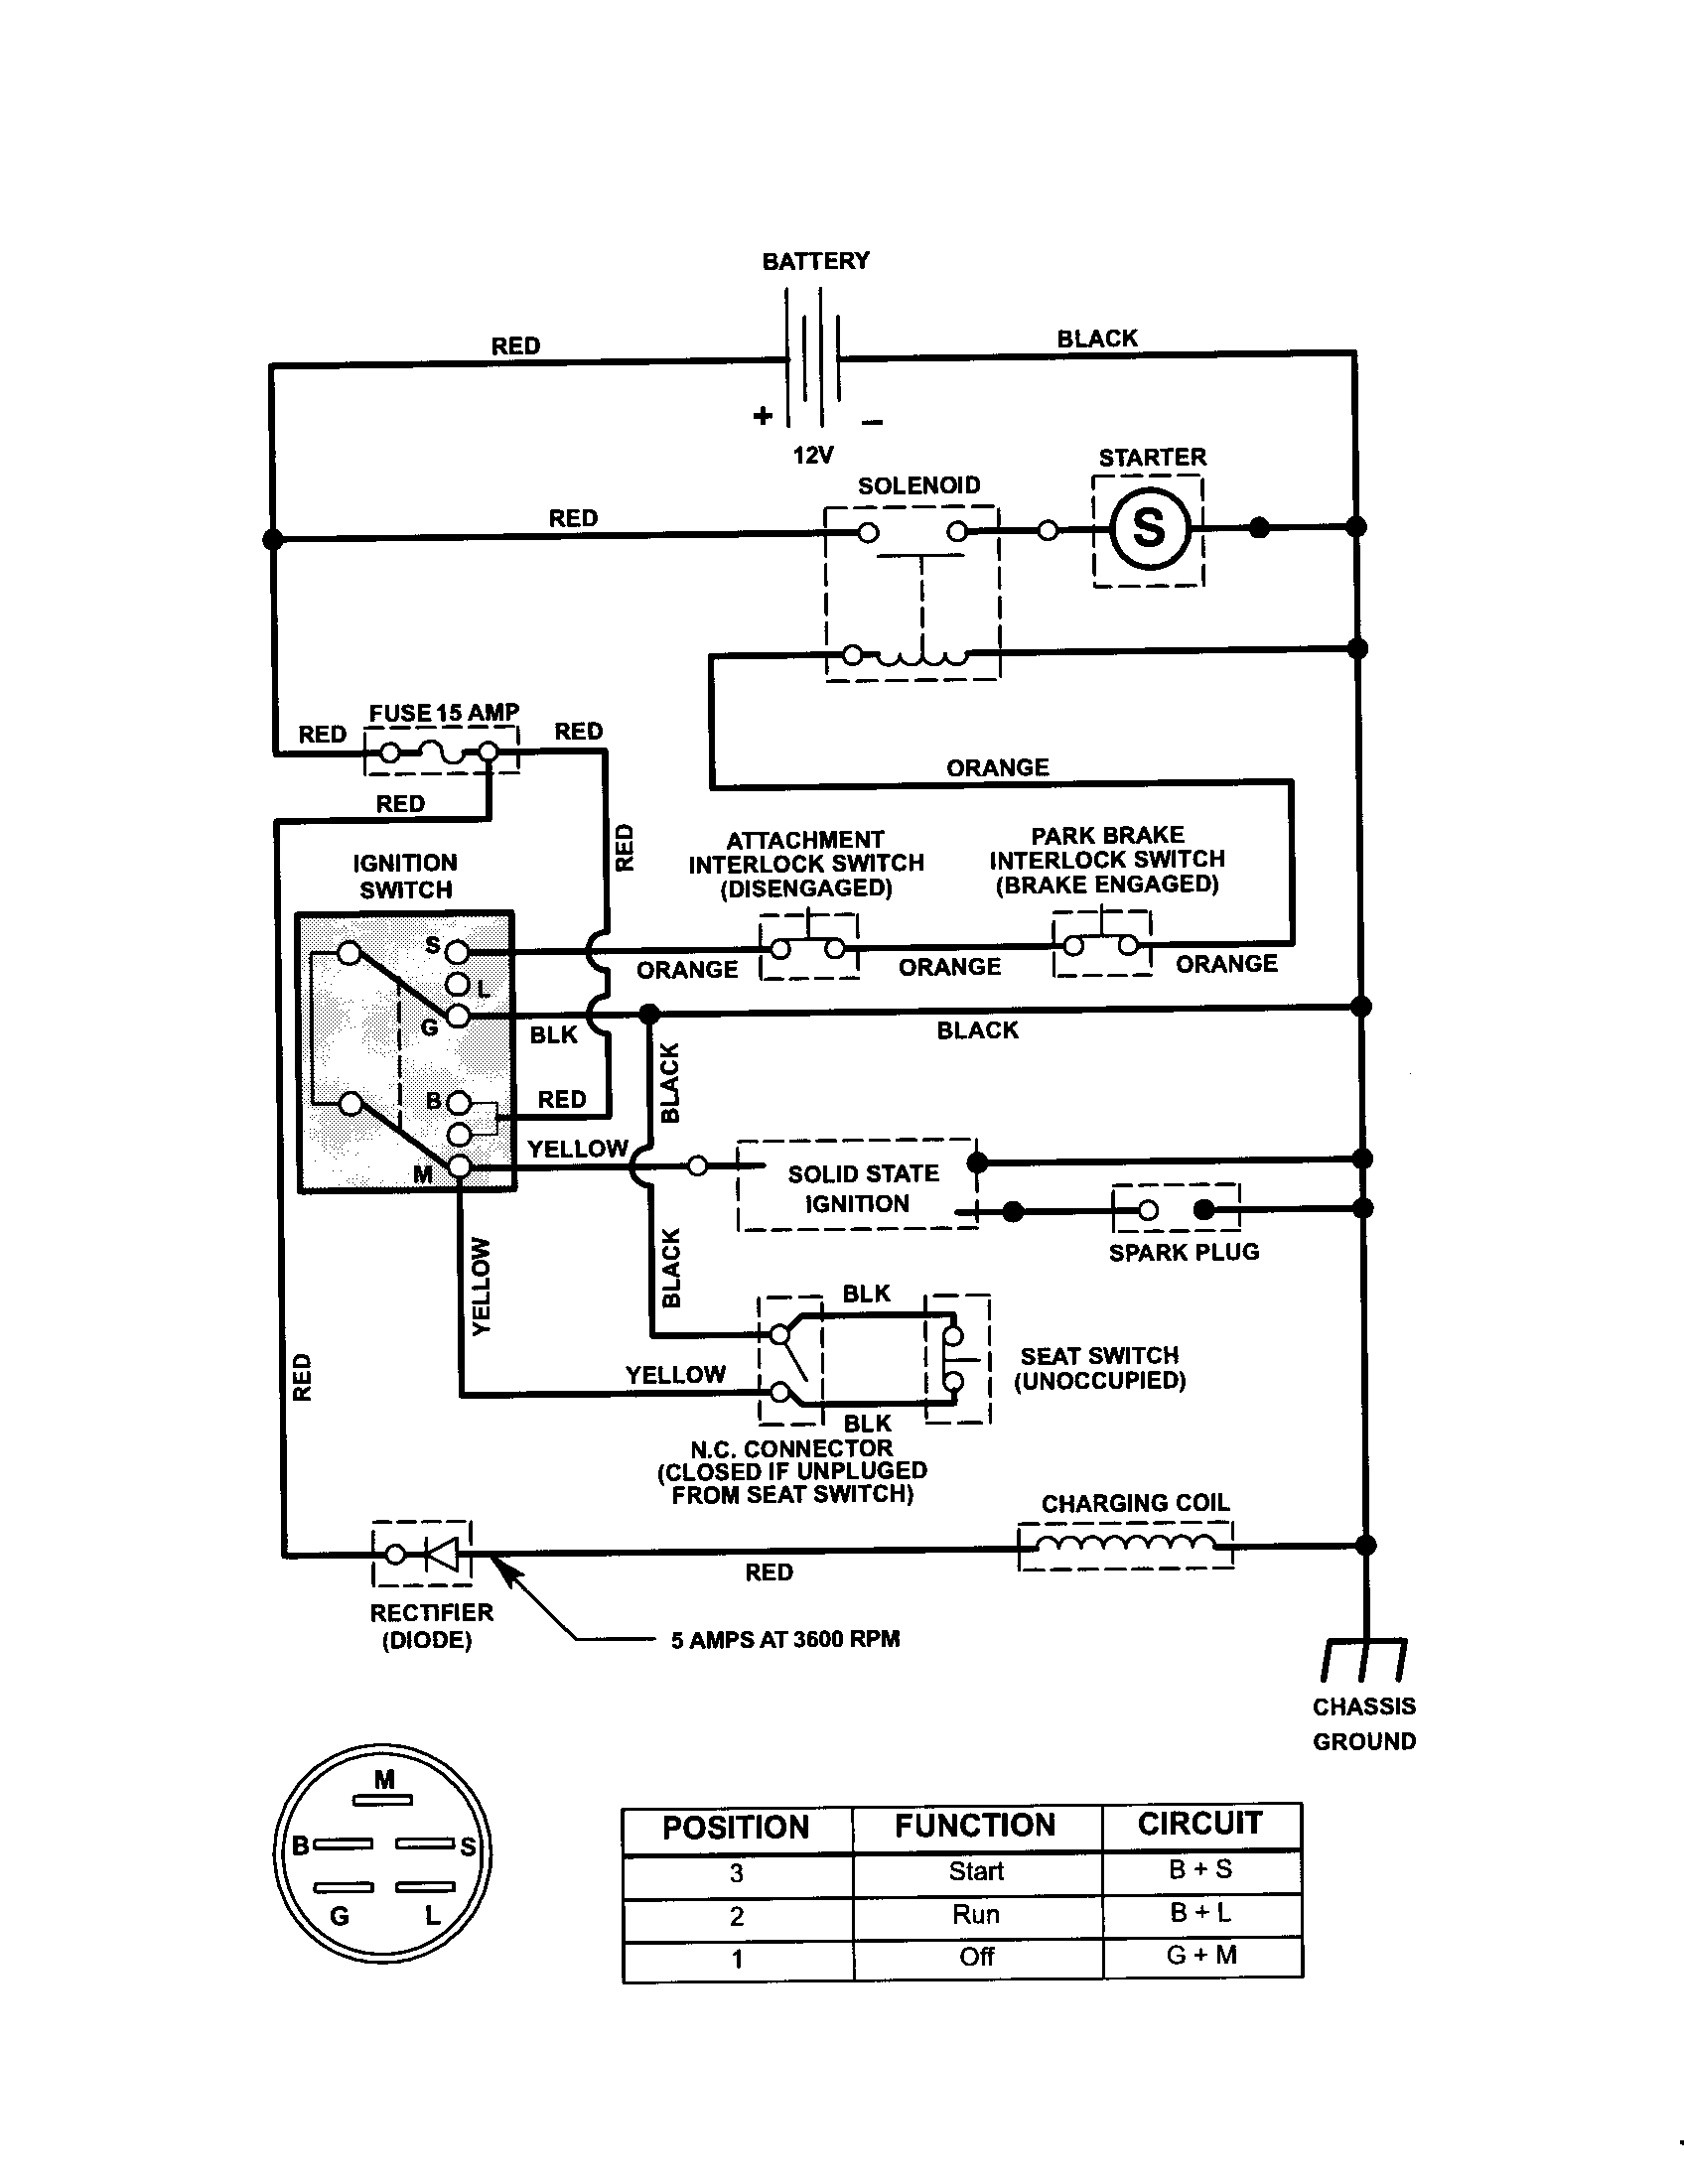 1b4fc64e2bcb7b381848942ff5c84dce craftsman riding mower electrical diagram pictures of craftsman Simple Electrical Wiring Diagrams at fashall.co